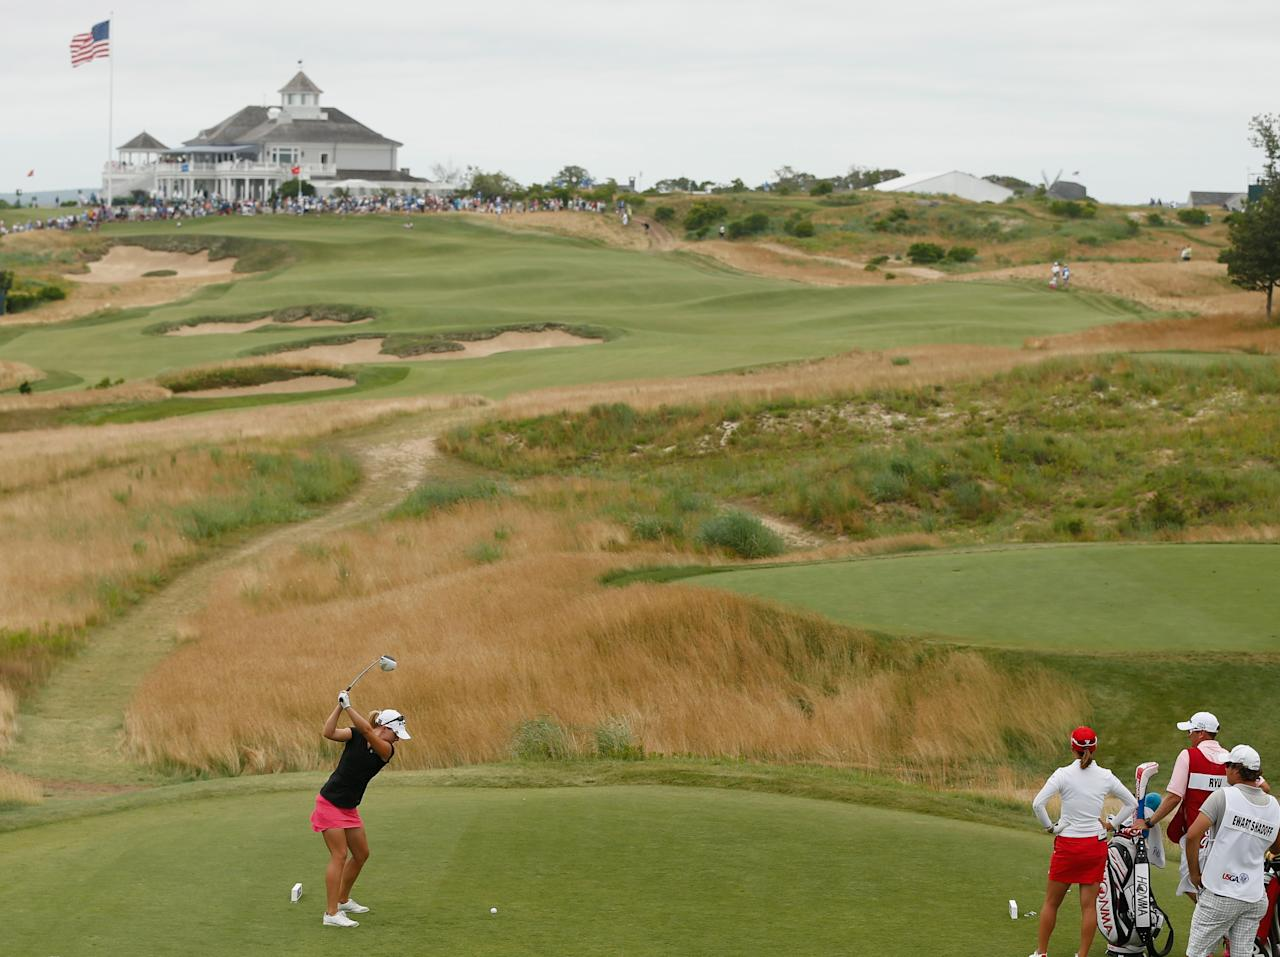 SOUTHAMPTON, NY - JUNE 30: Jodi Ewart Shadoff of England hits her tee shot on the second hole during the final round of the 2013 U.S. Women's Open at Sebonack Golf Club on June 30, 2013 in Southampton, New York. (Photo by Scott Halleran/Getty Images)